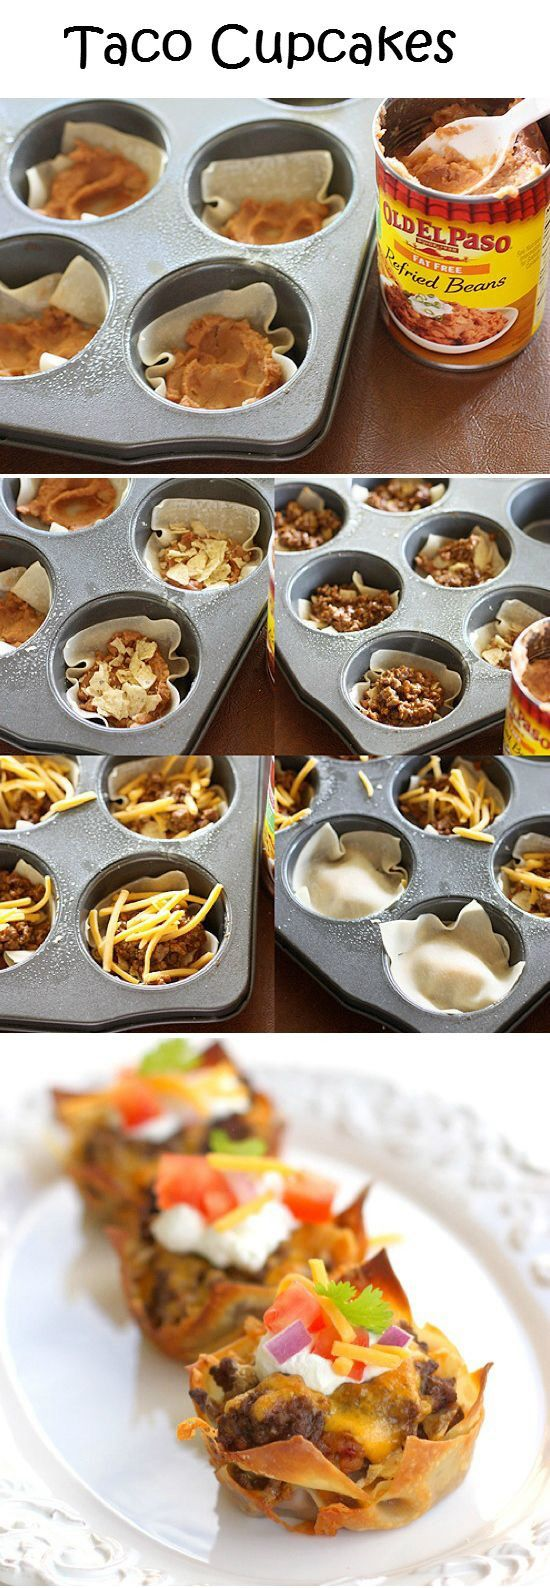 Taco cupcakes using wonton wrappers. | Food I love | Pinterest